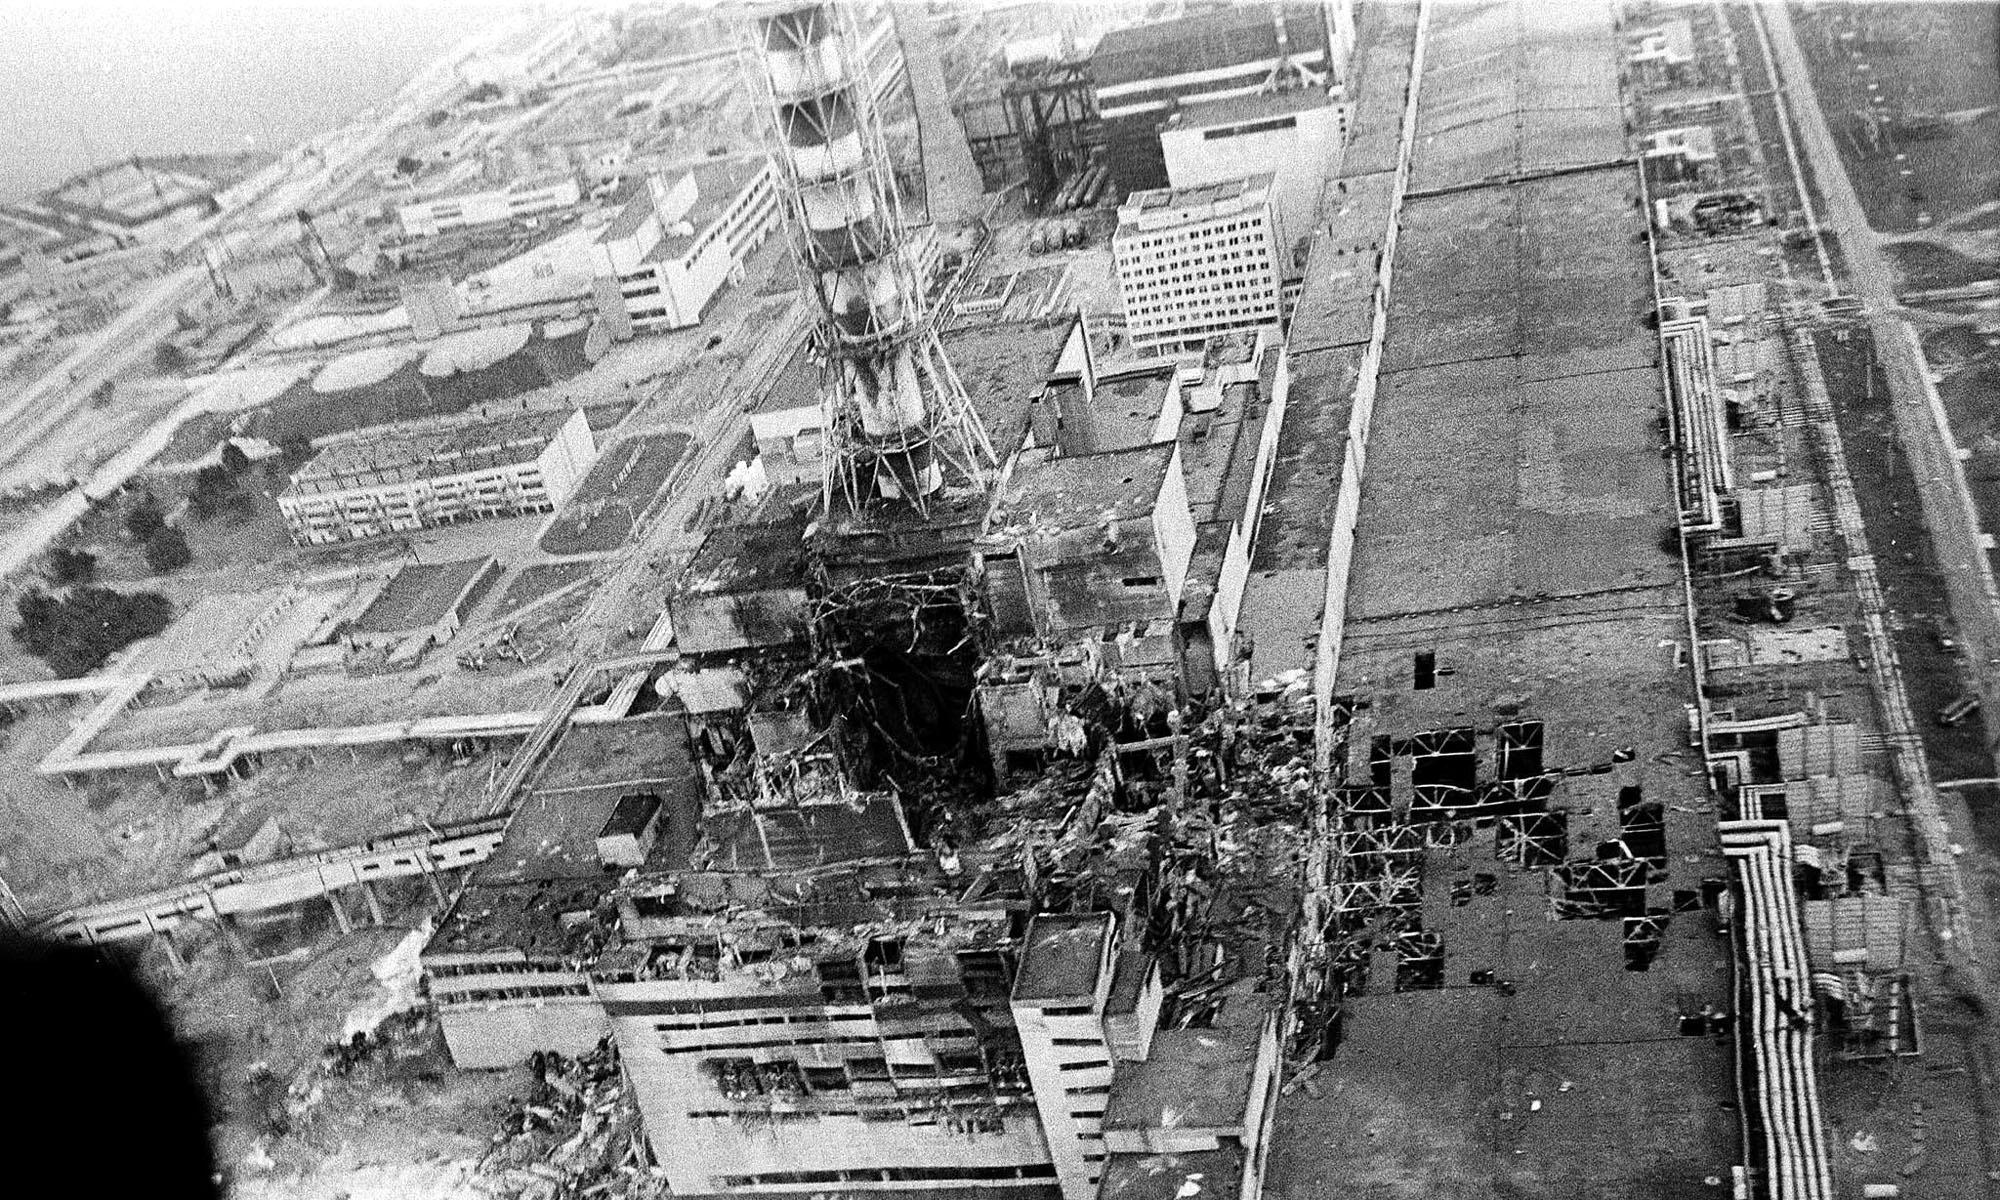 The truth about Chernobyl? I saw it with my own eyes…